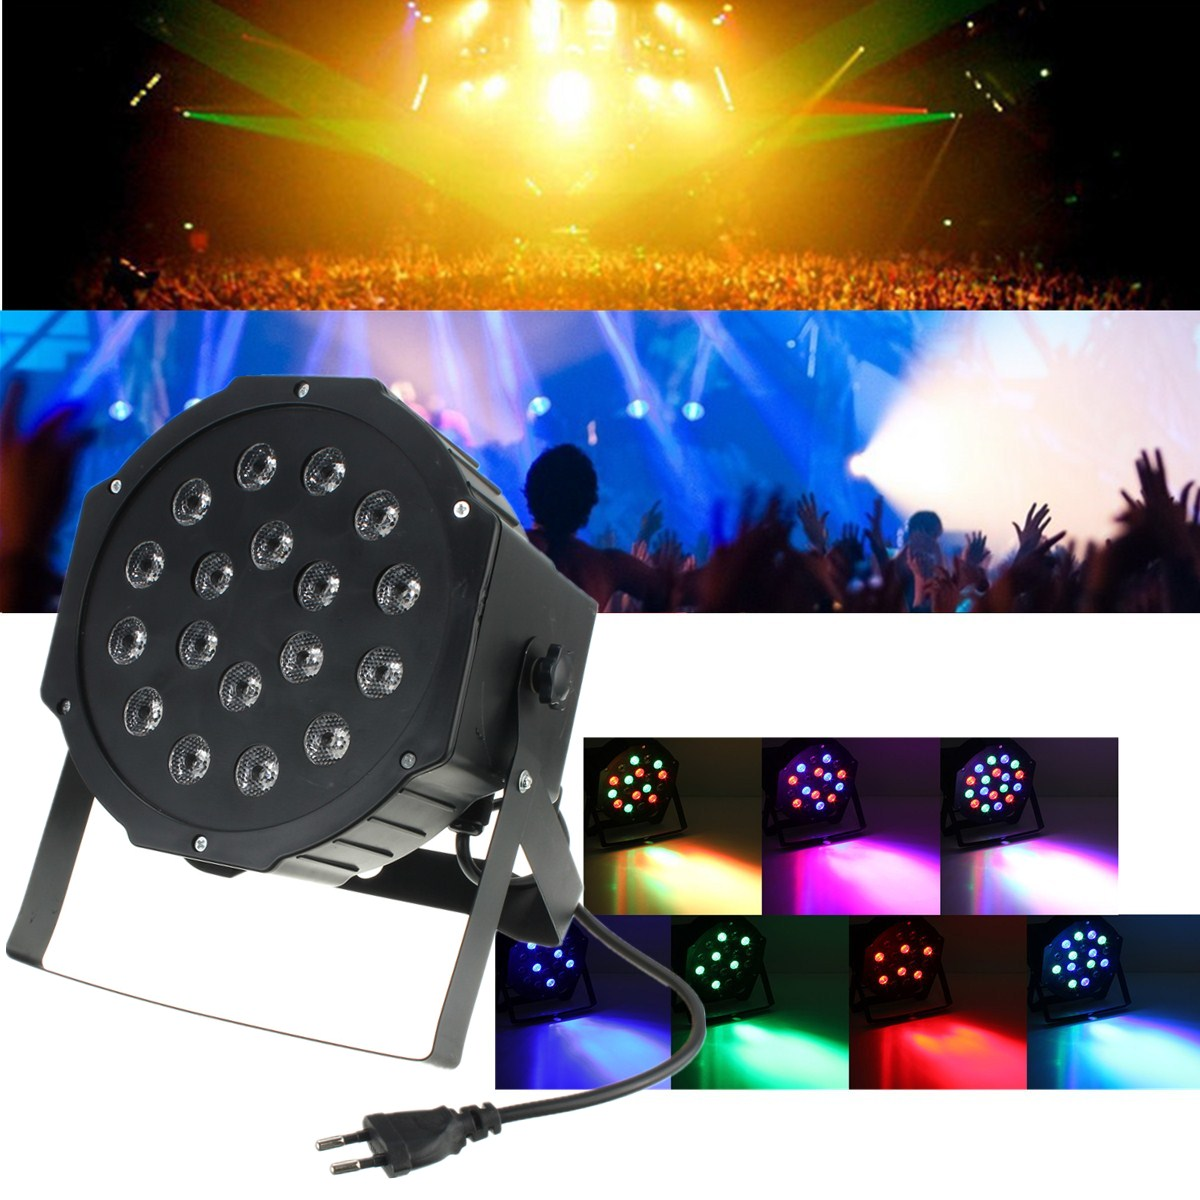 18W RGB LED Stage Light Par DMX-512 Lighting Laser Projector Party DJ Lamp for DJ Party Disco AC110 - 220V Power plug dmx 512 rgb led stage light 12w sound active stage lighting effect laser strobe projector lamp for party dj disco ac90 240v